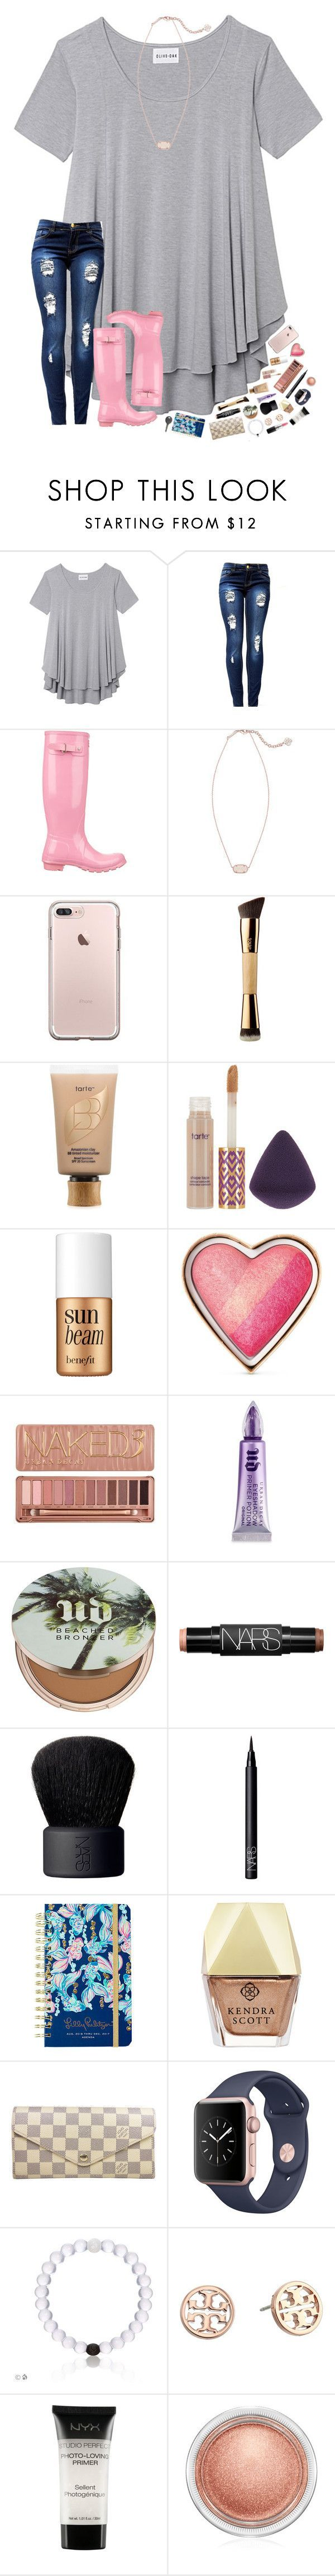 """""""new uggs>>>>>>>>>>"""" by hopemarlee ❤ liked on Polyvore featuring Olive + Oak, Hunter, Kendra Scott, tarte, Benefit, Too Faced Cosmetics, Urban Decay, NARS Cosmetics, Lilly Pulitzer and Louis Vuitton"""